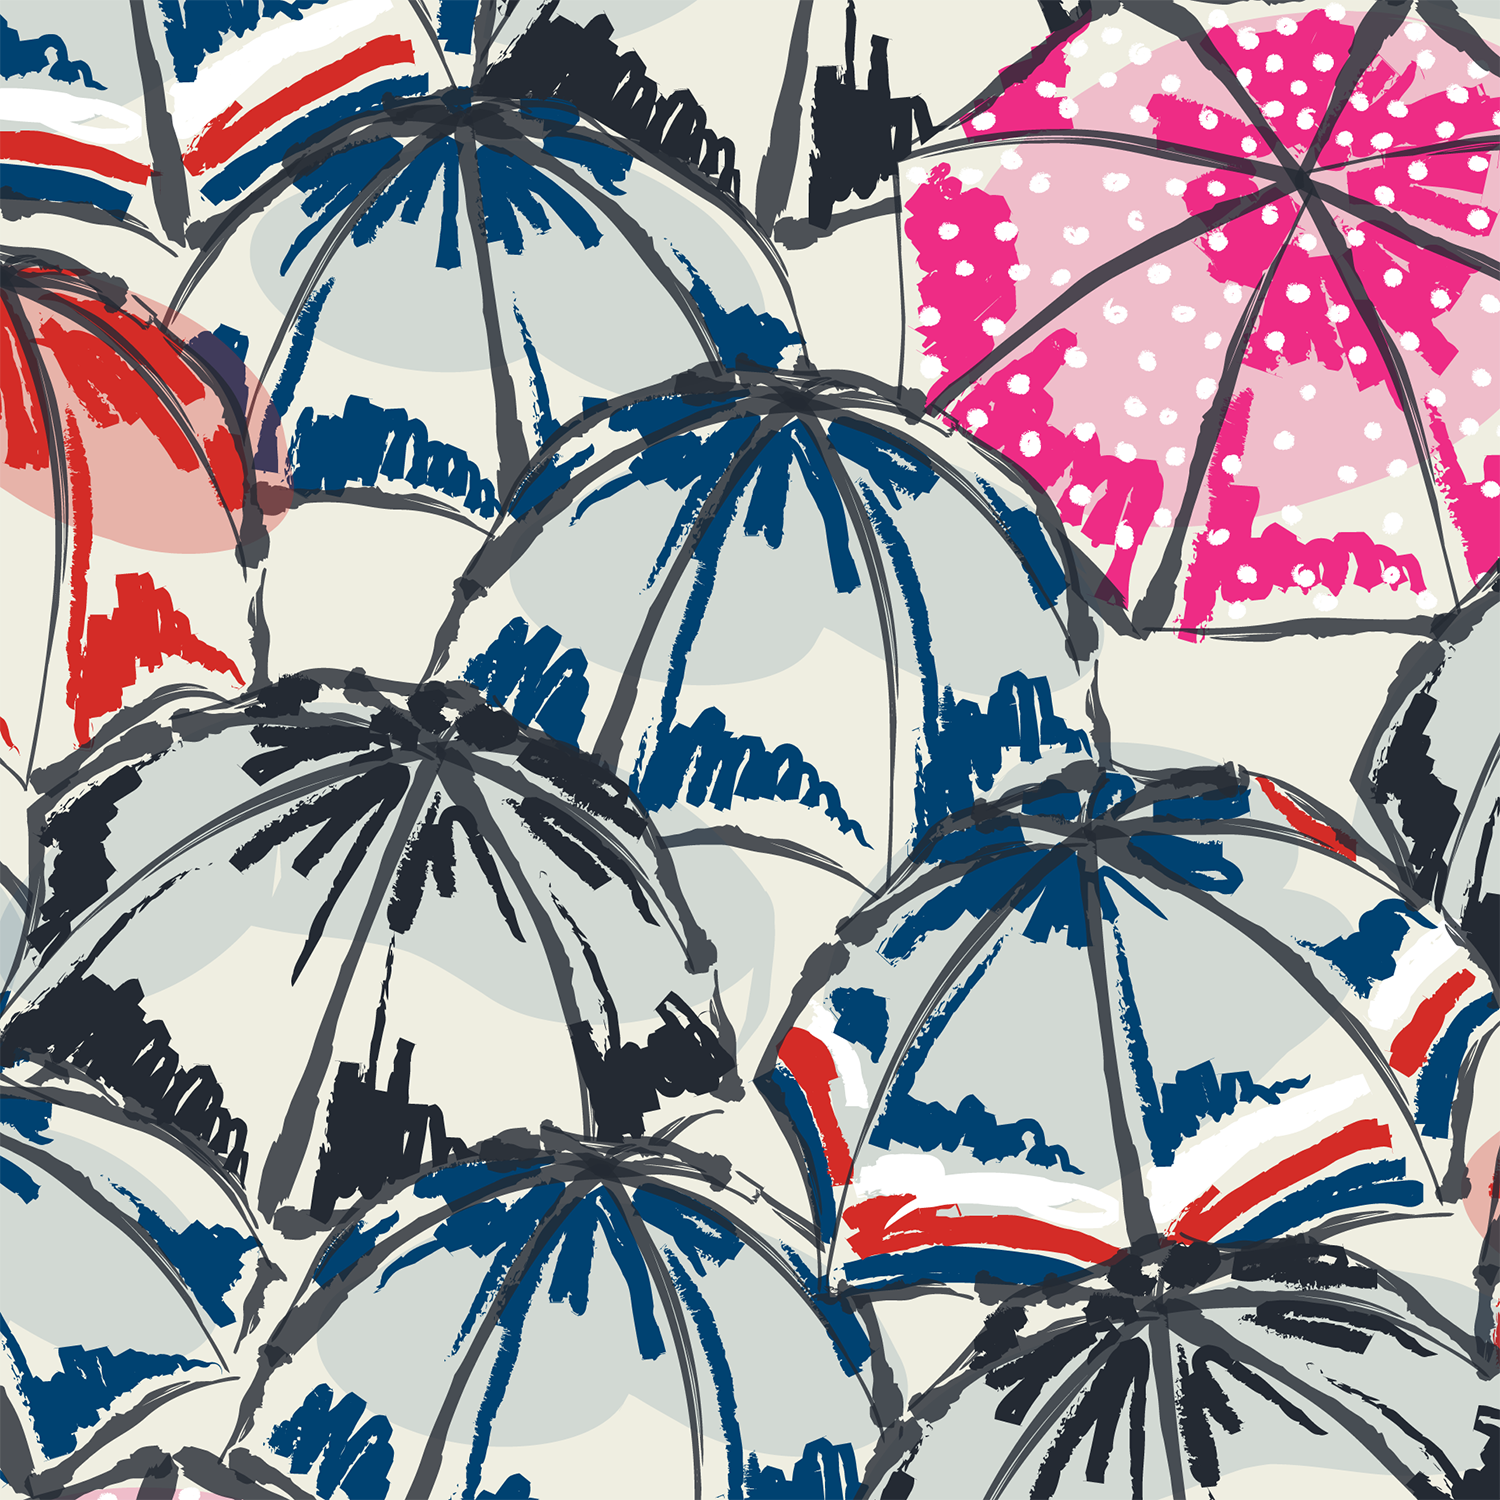 brolly-raster-102912.png